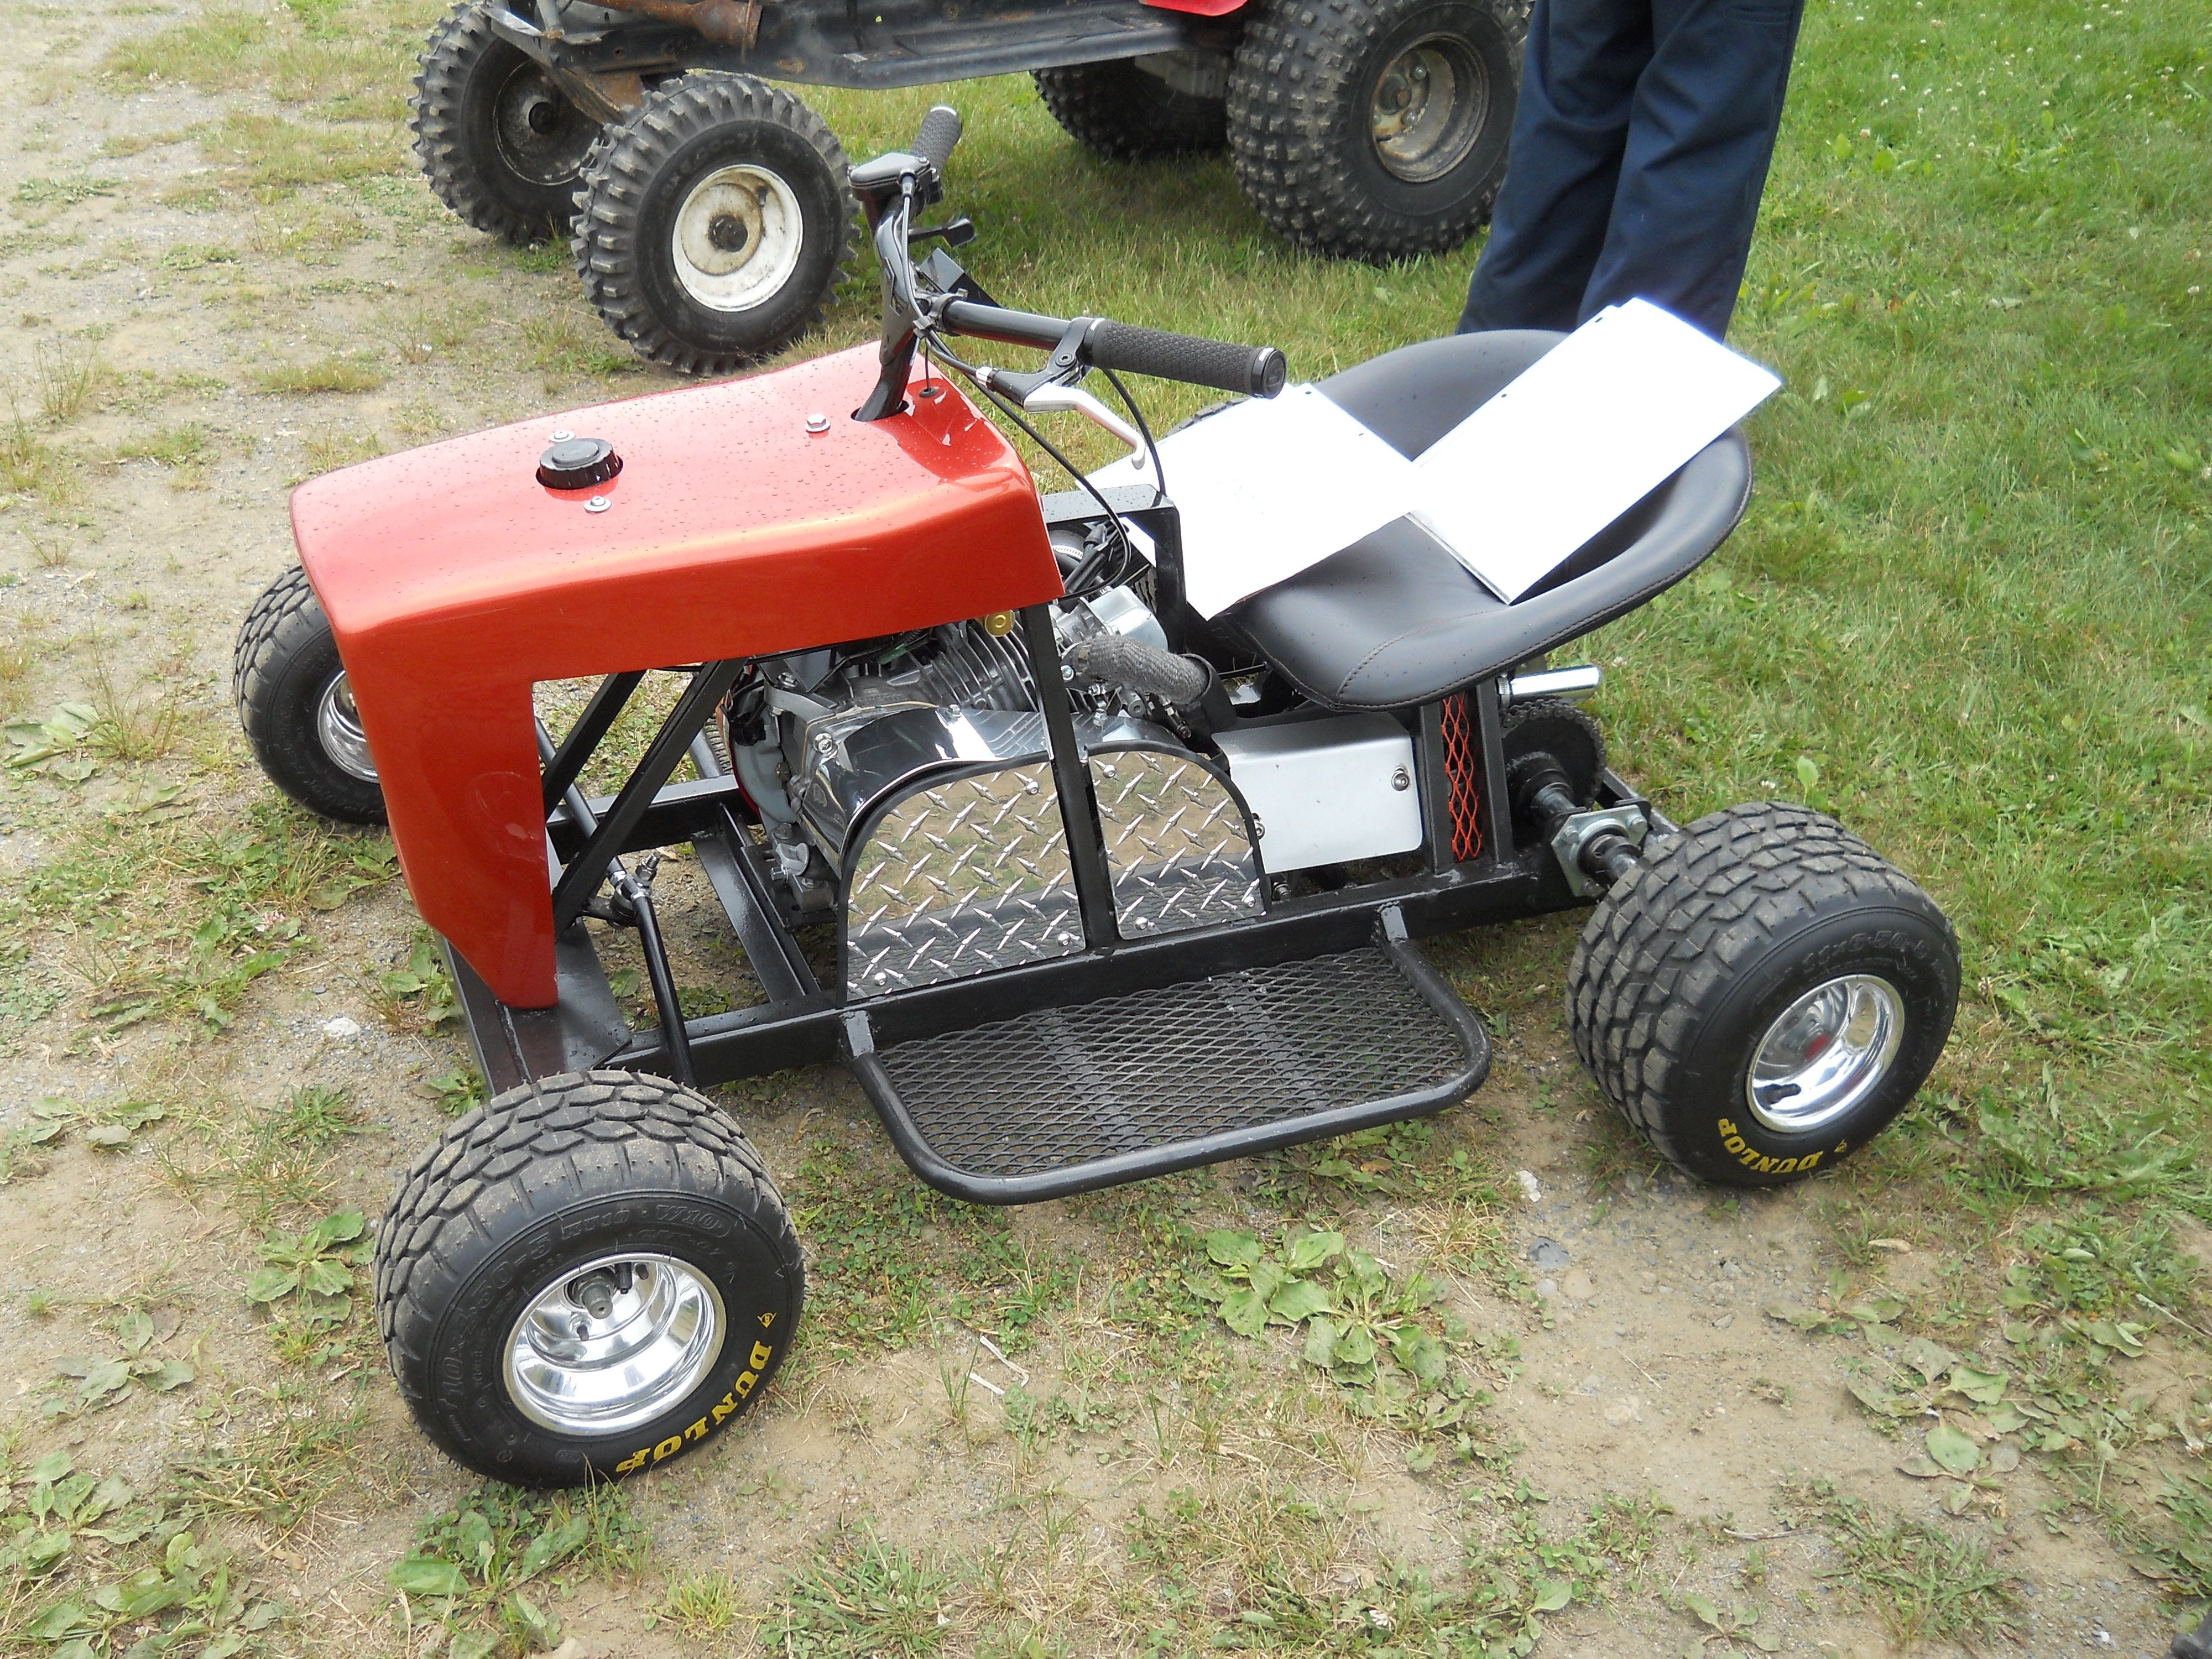 Craftsman Go Kart : Mowcart lawn mower go cart https youtube